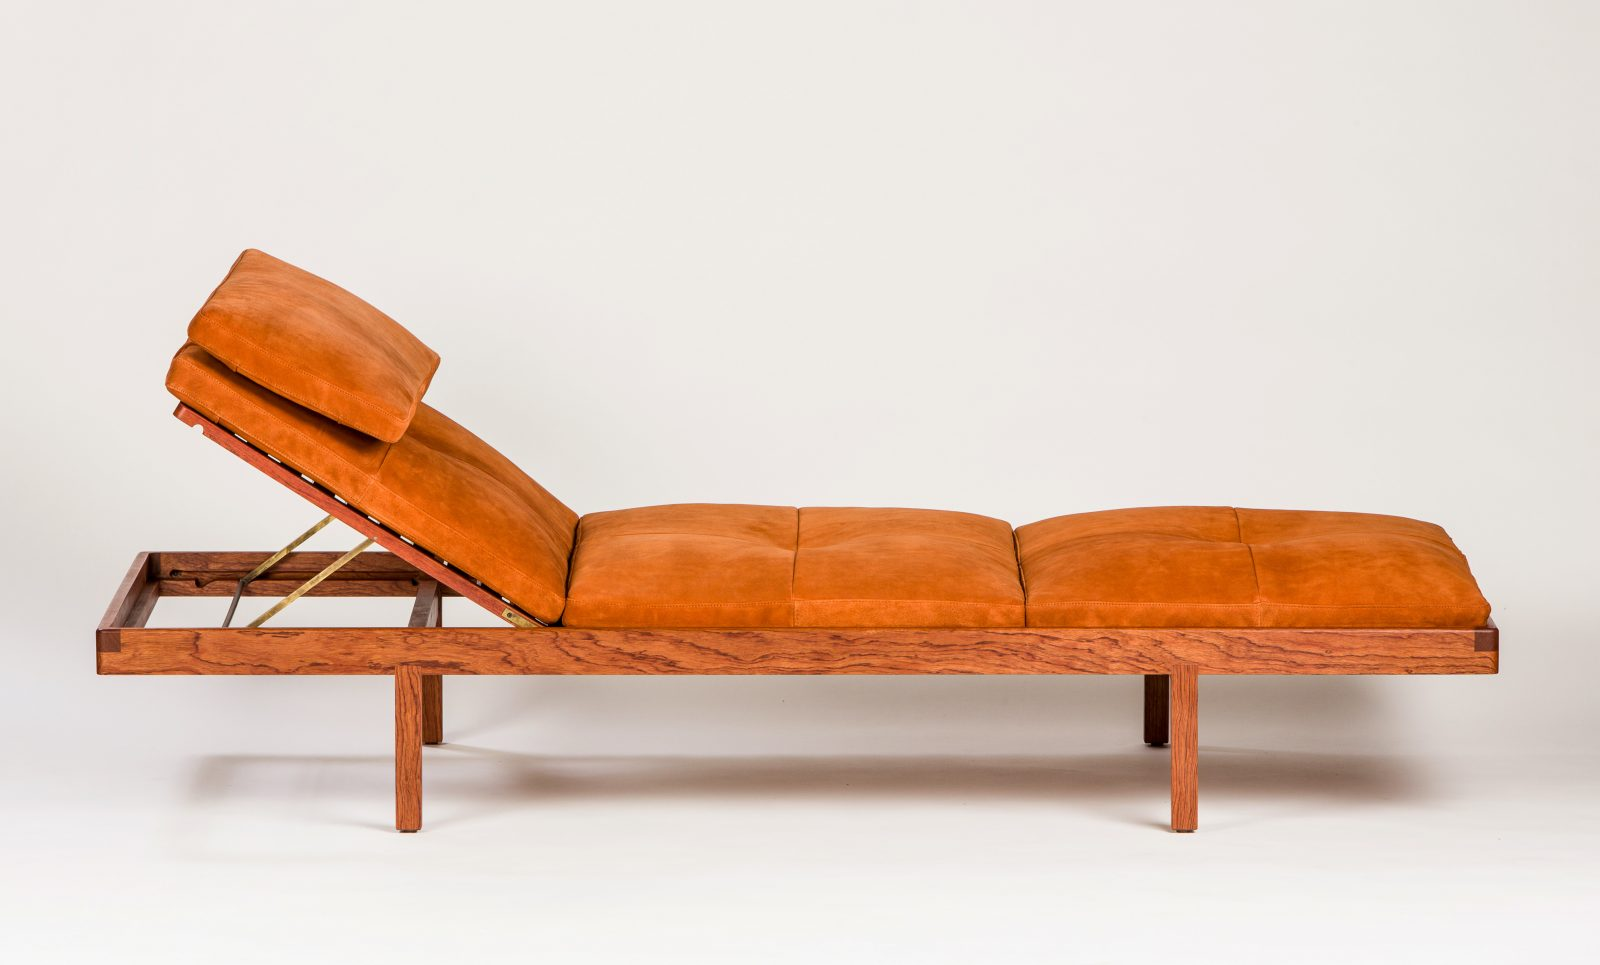 BassamFellows CB-41 Daybed in bespoke solid African Rosewood and French calf suede, detail, credit ELDON ZIMMERMAN